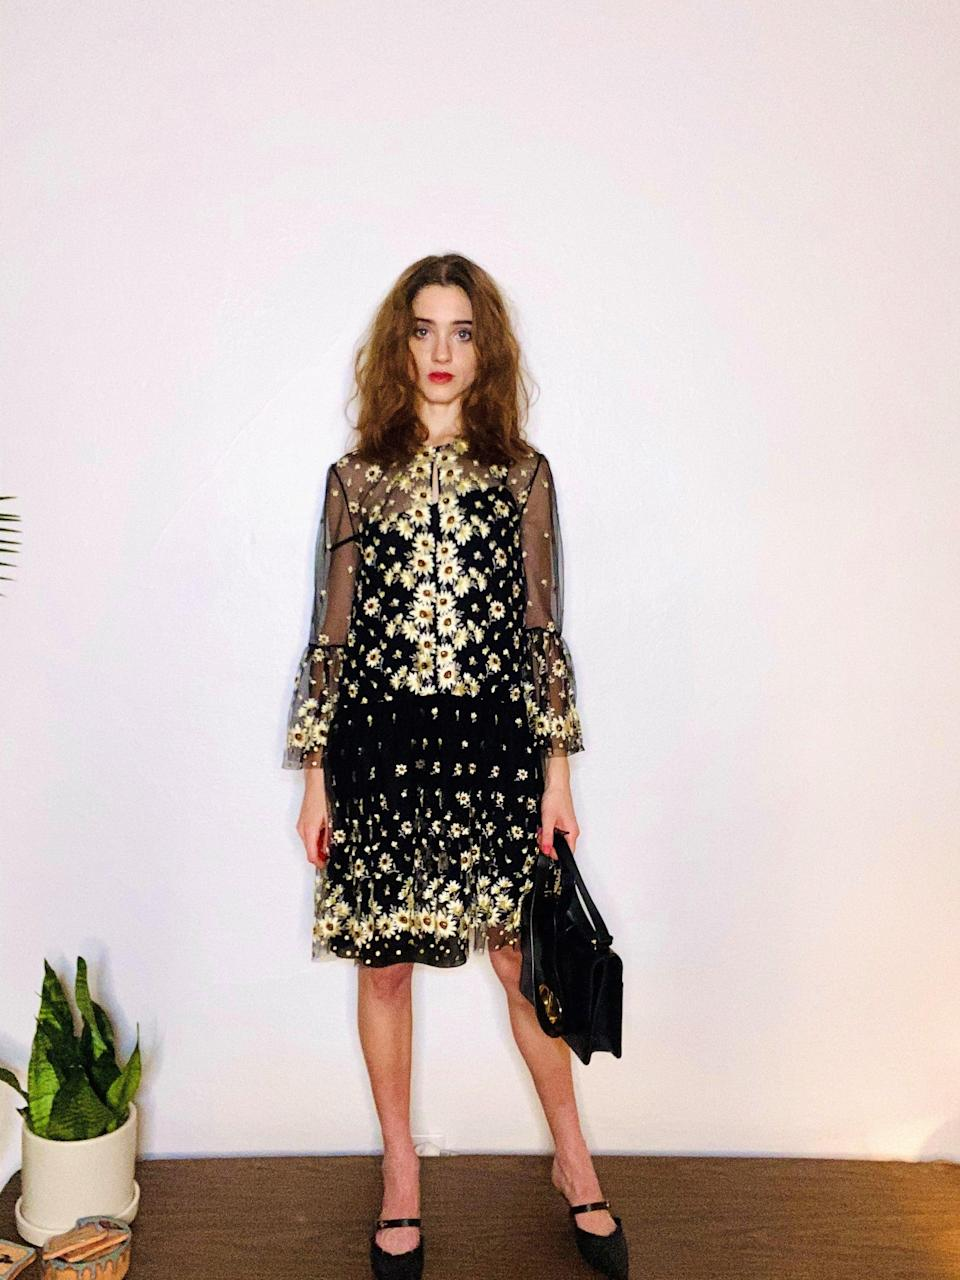 <h2>Natalia Dyer, Dior</h2><br><em>Stranger Things</em> star Natalia Dyer is no stranger to Paris Fashion Week. In fact, Dyer and her boyfriend-slash-co-star Charlie Heaton are regulars at shows from Fendi to Dior. This season, of course, they both stayed home, but, in the name of fashion, Dyer still put together a 10/10 Dior 'fit, which included tiny daisy appliques and Mary-Janes.